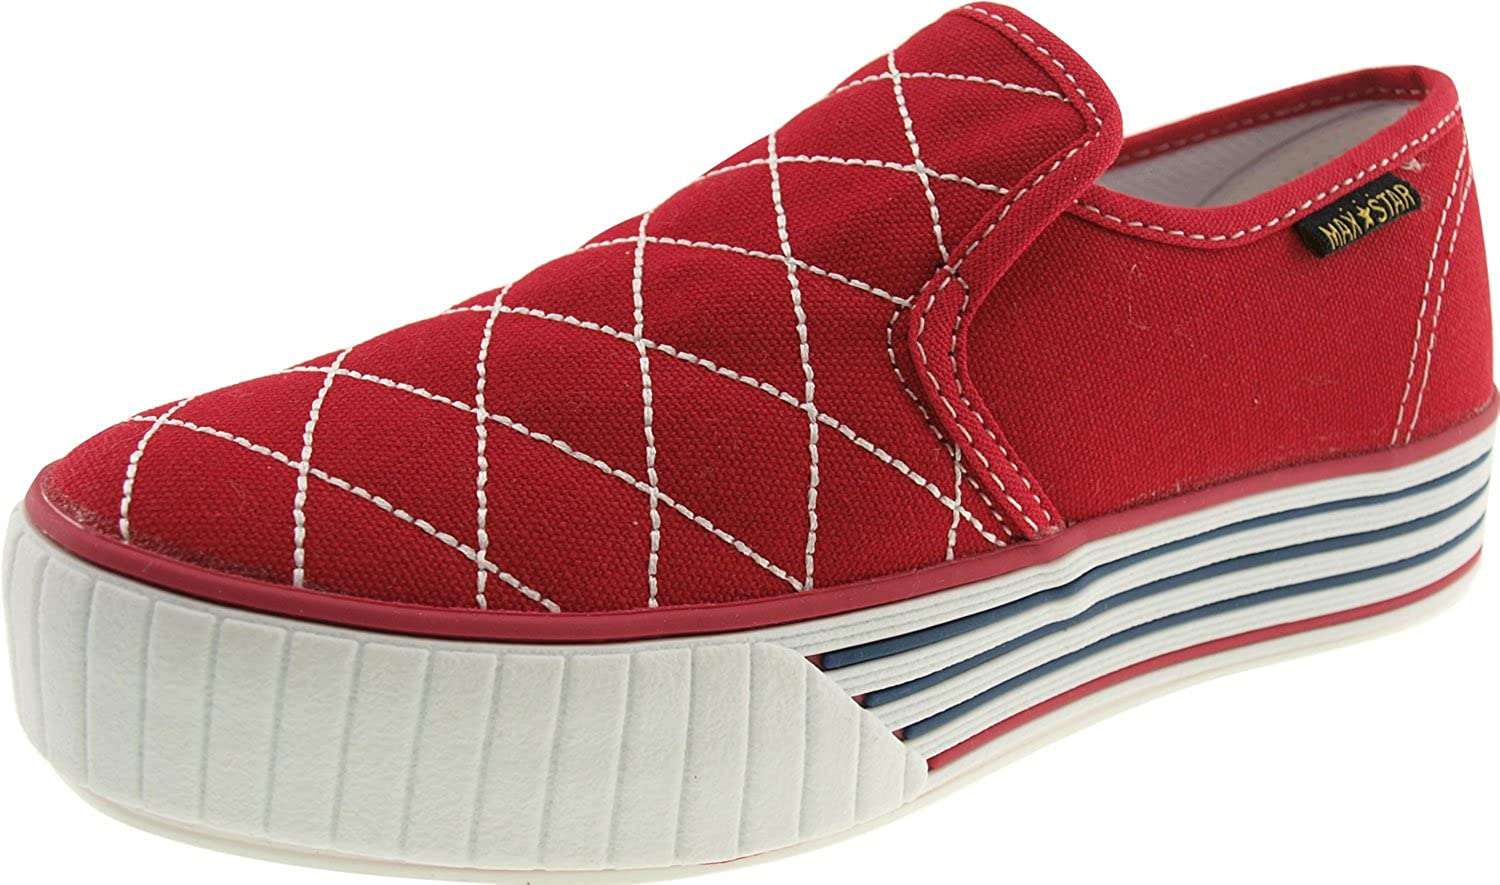 Maxstar Low-top Stitch Canvas Sneakers shoes